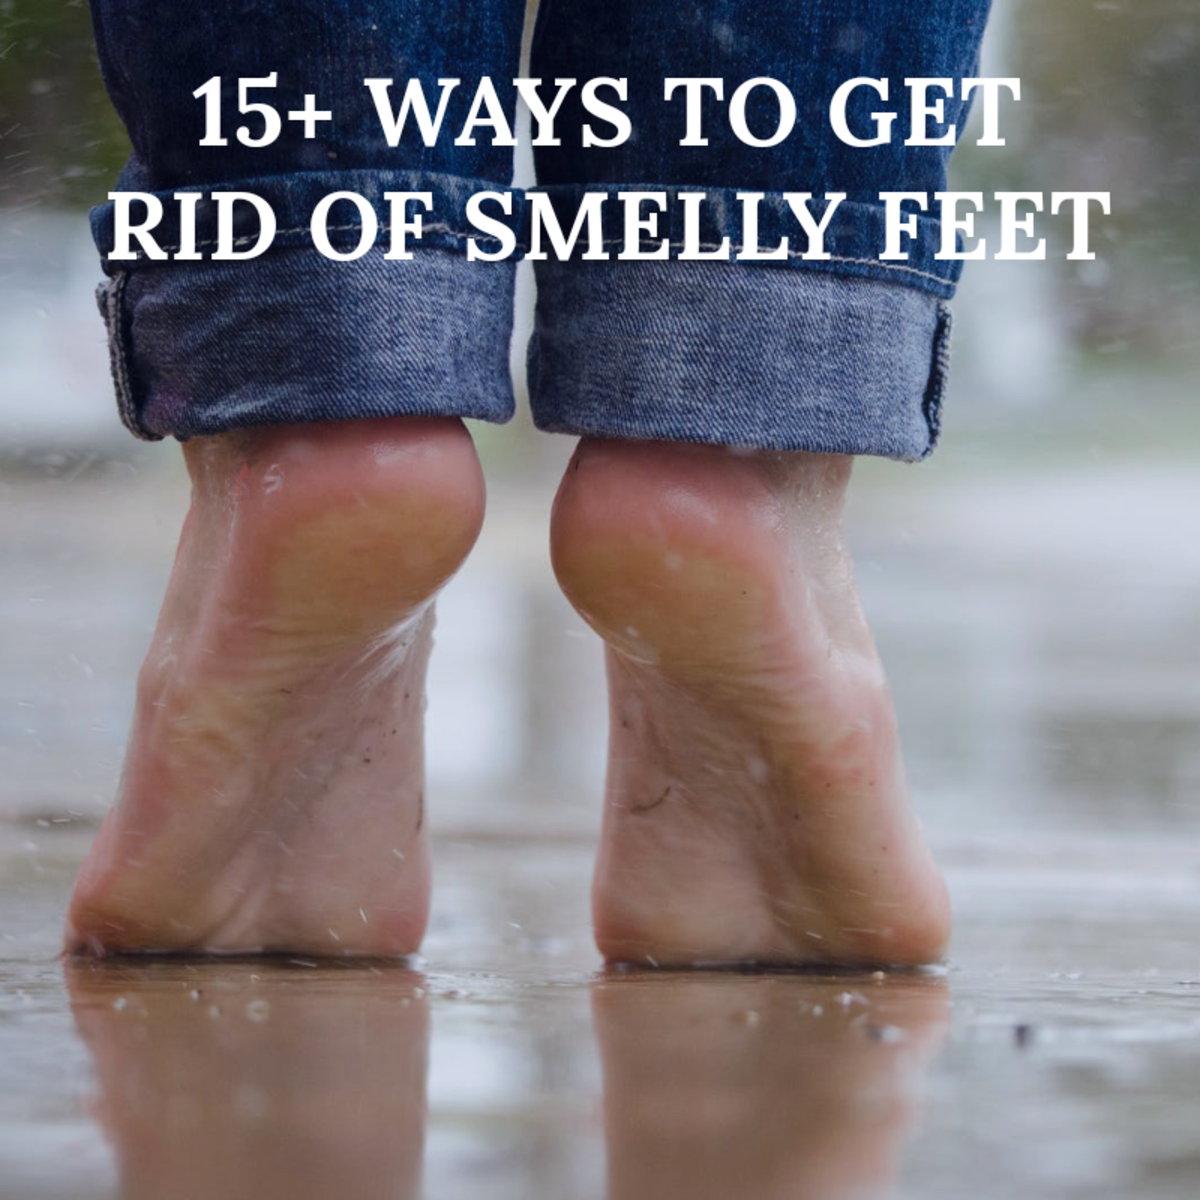 How to Prevent and Cure Smelly Feet